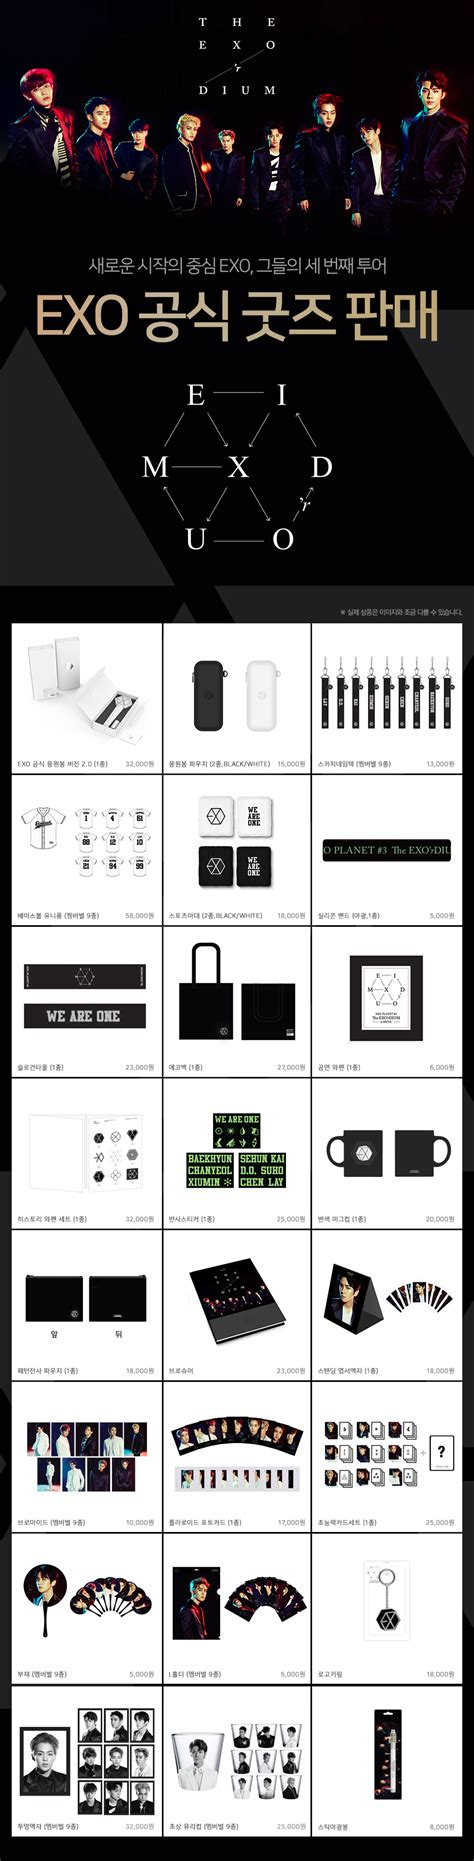 exo goods 엑소 exo planet page 1487 allkpop forums